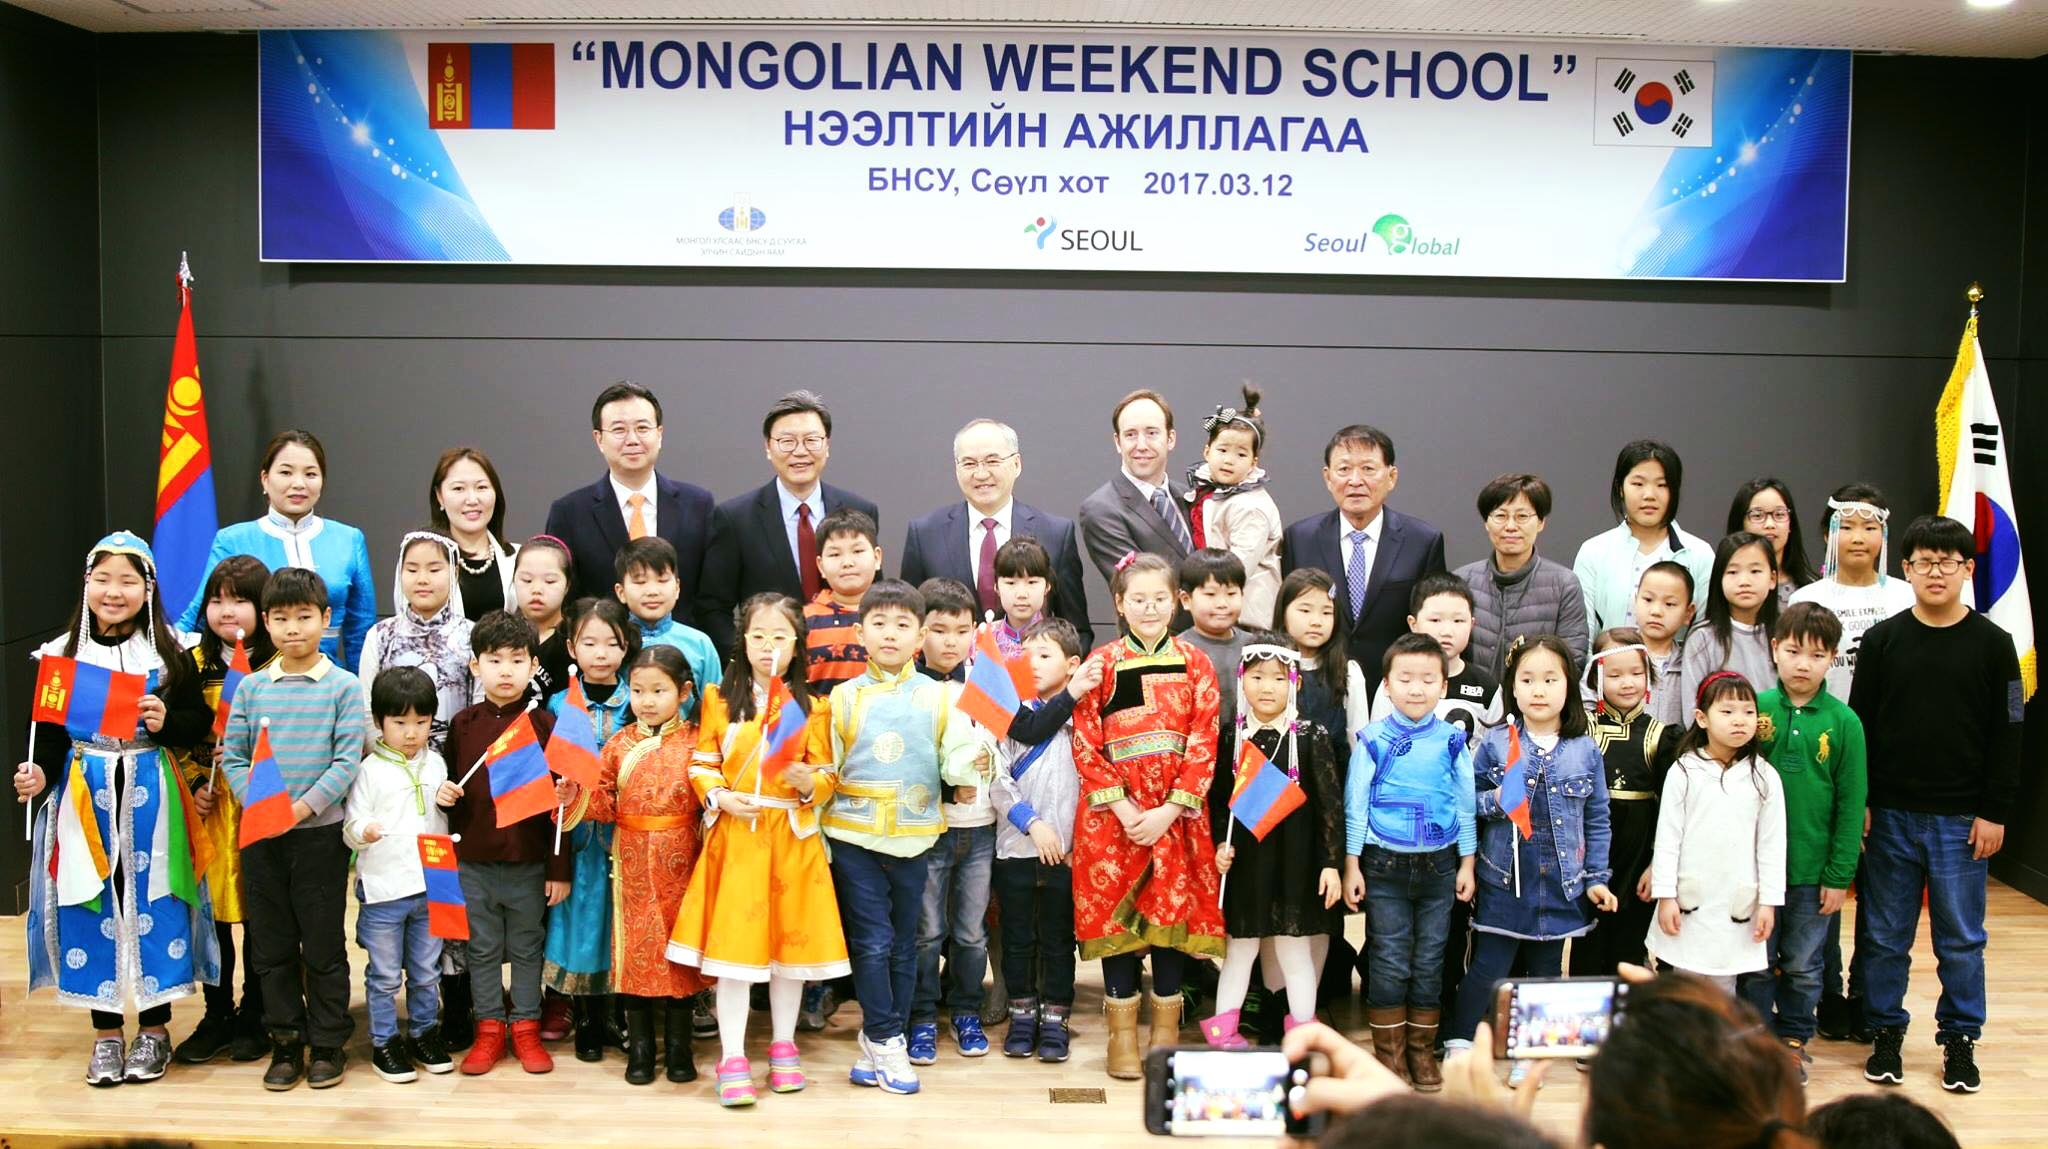 Mongolian_weekend_school1.jpg